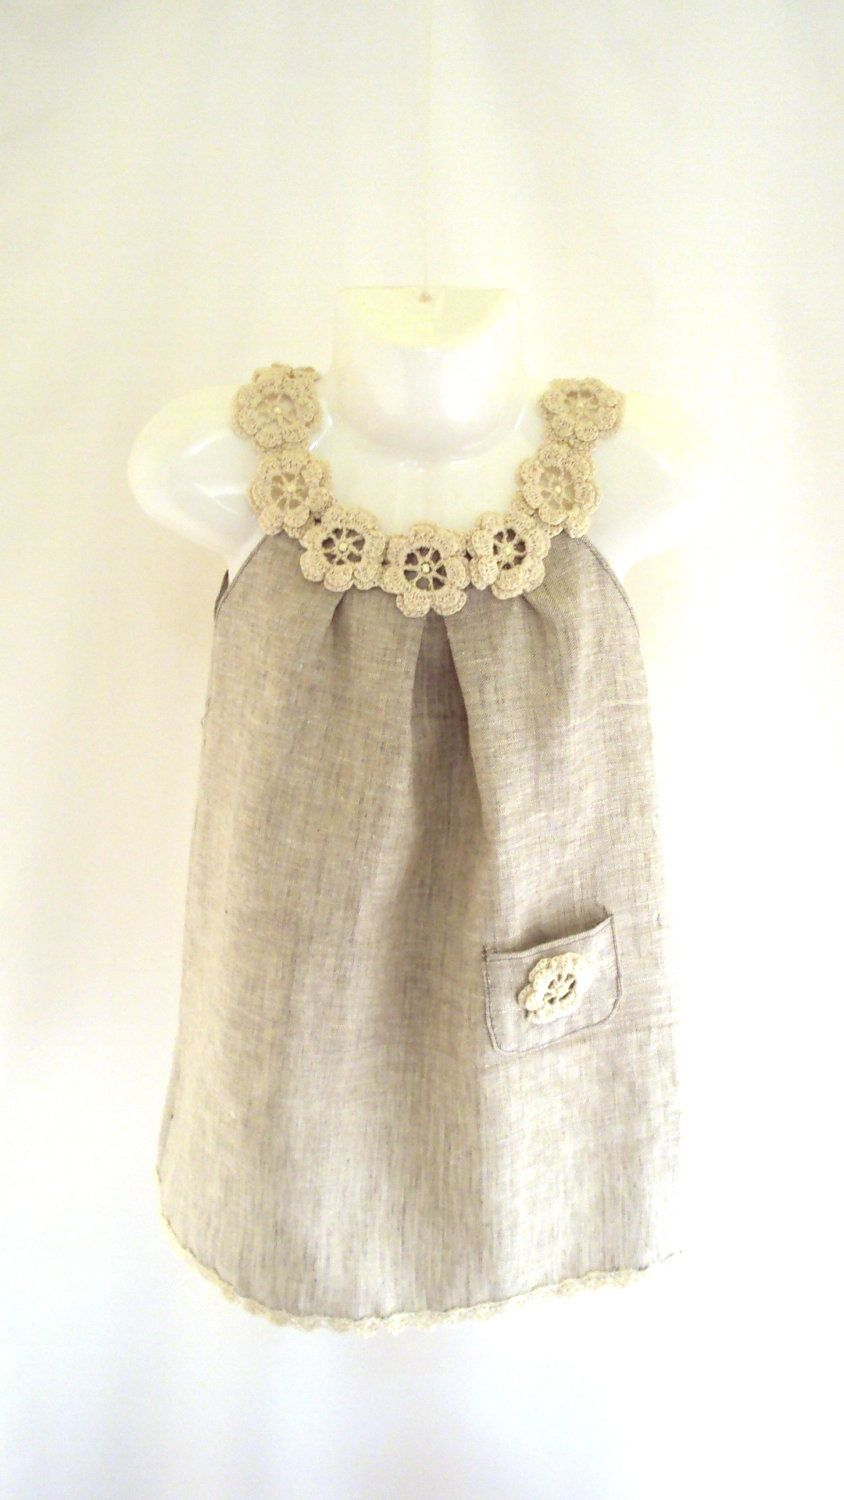 Items similar to White organic baby, toddler, girl, infant party dress, crocheted milk flower collar, flower girl dress, princess dress, photography props on Etsy